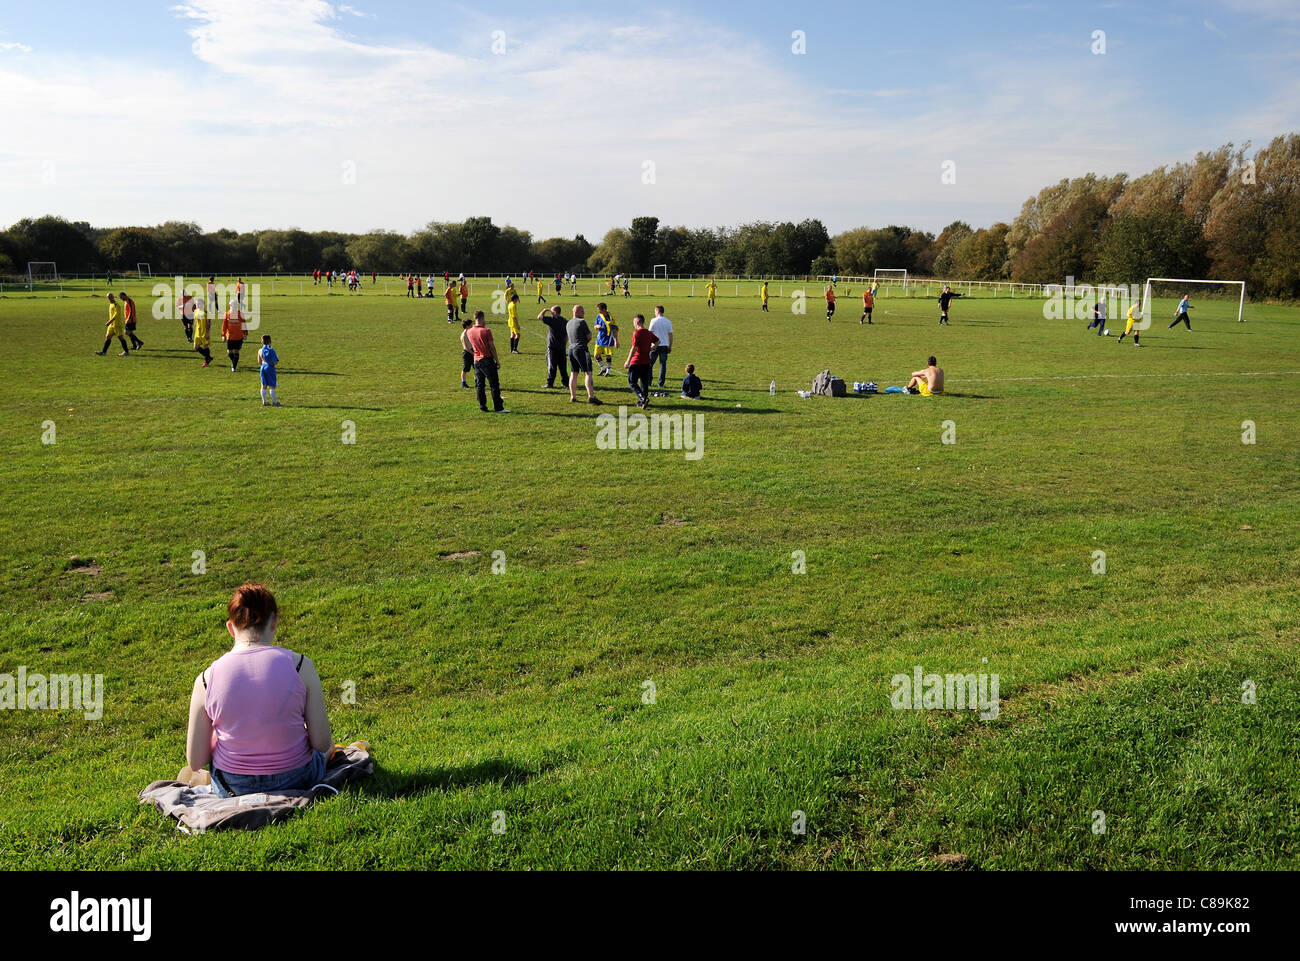 Amateur football match at Outwood Road, Radcliffe, Greater Manchester, England. Picture by Paul Heyes, October, - Stock Image